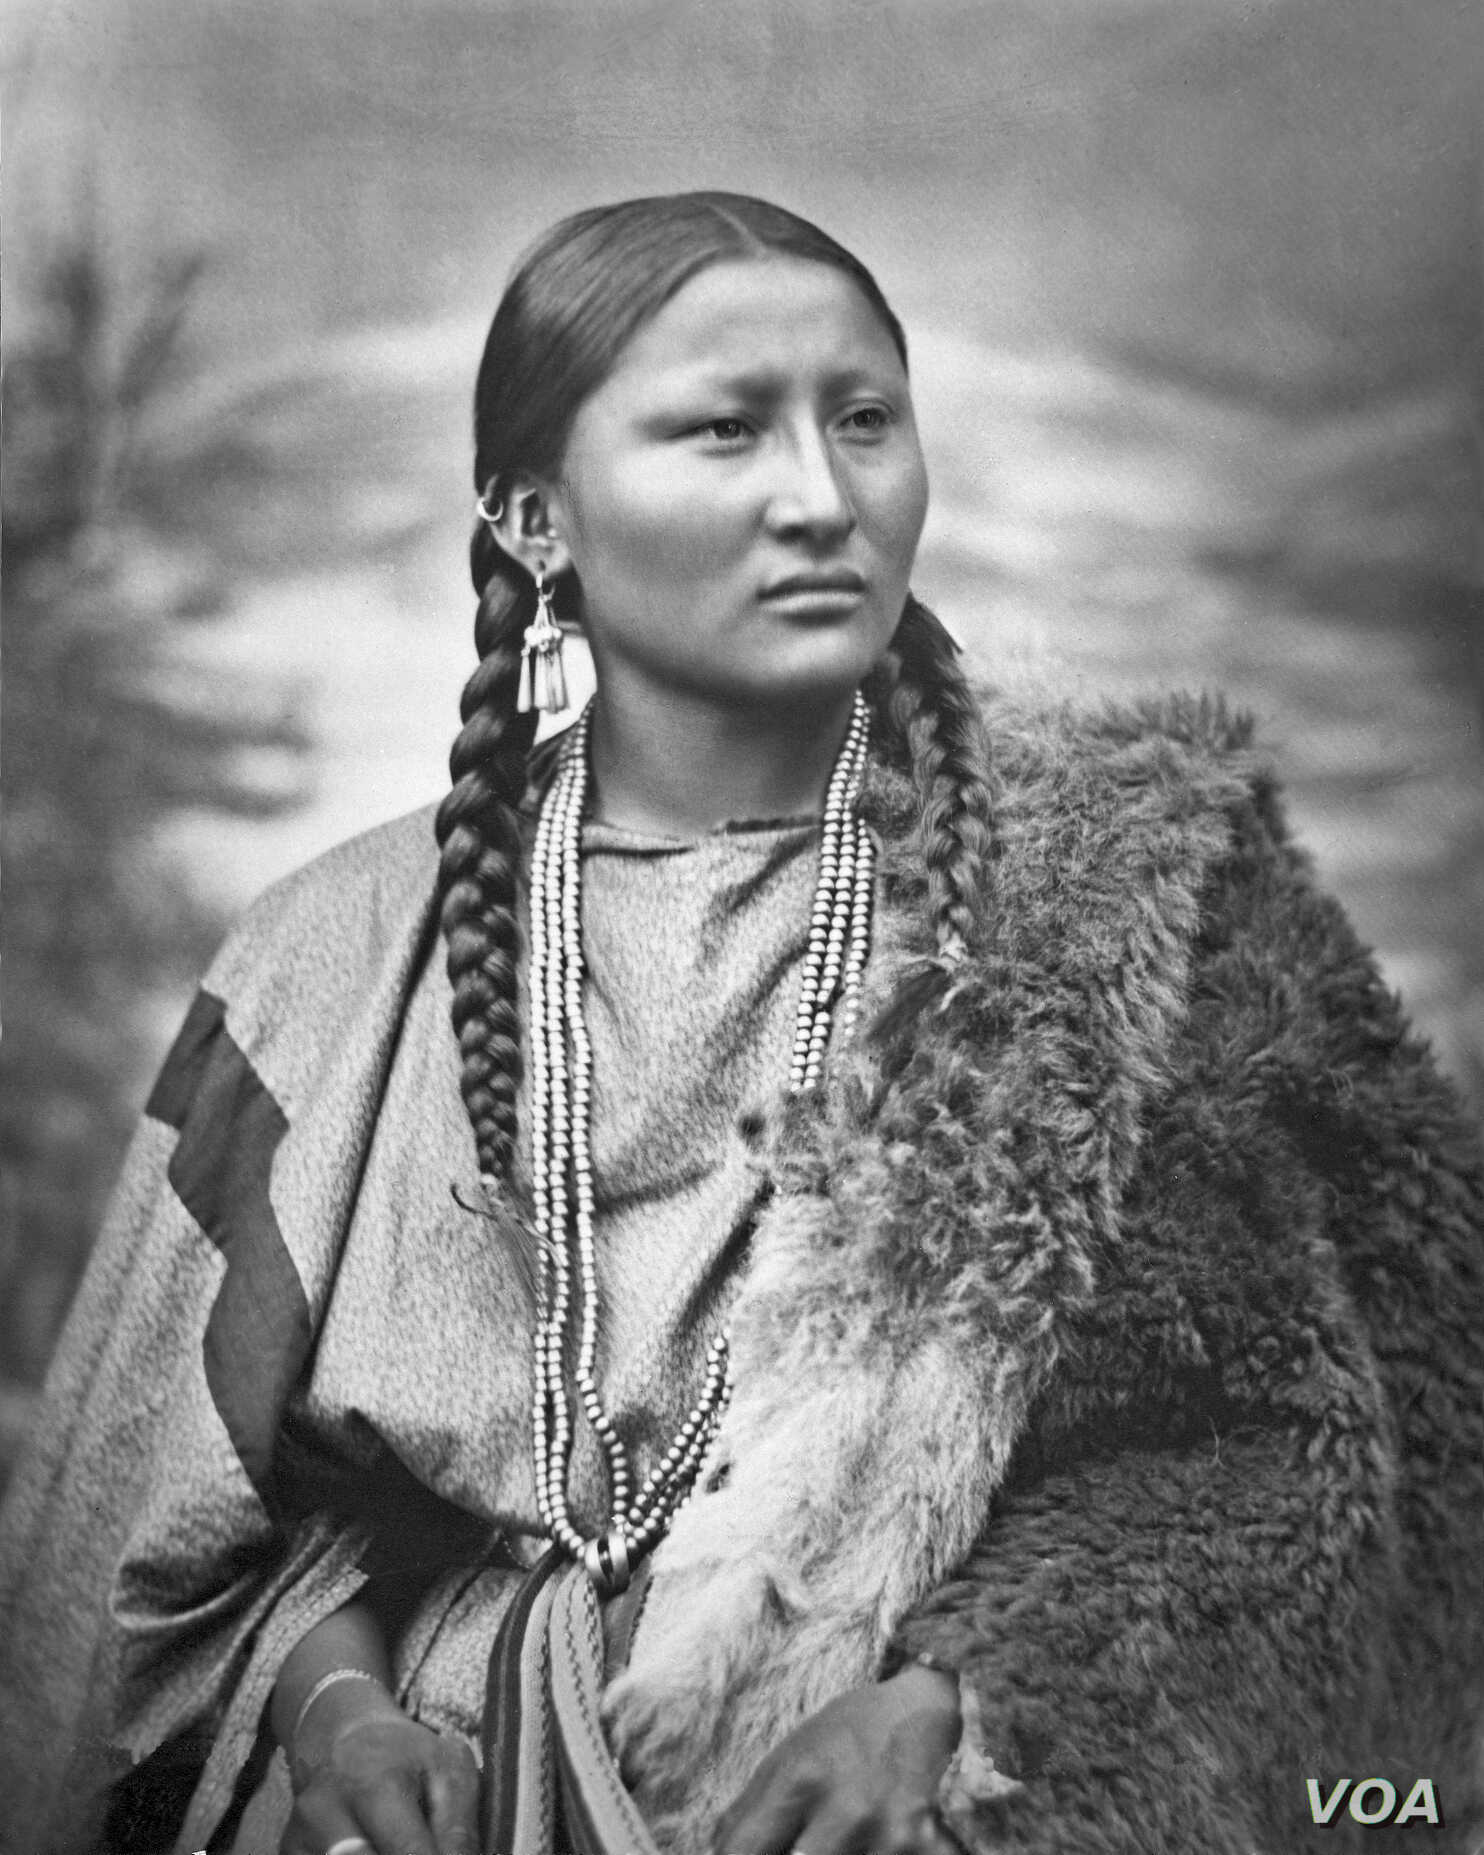 This photo by L.A. Huffman shows Pretty Nose, an Arapaho war chief believed to have fought in the Battle at Little Big Horn in which General George Armstrong was killed, just two years before this 1878 photo was taken at Fort Keogh, Montana.